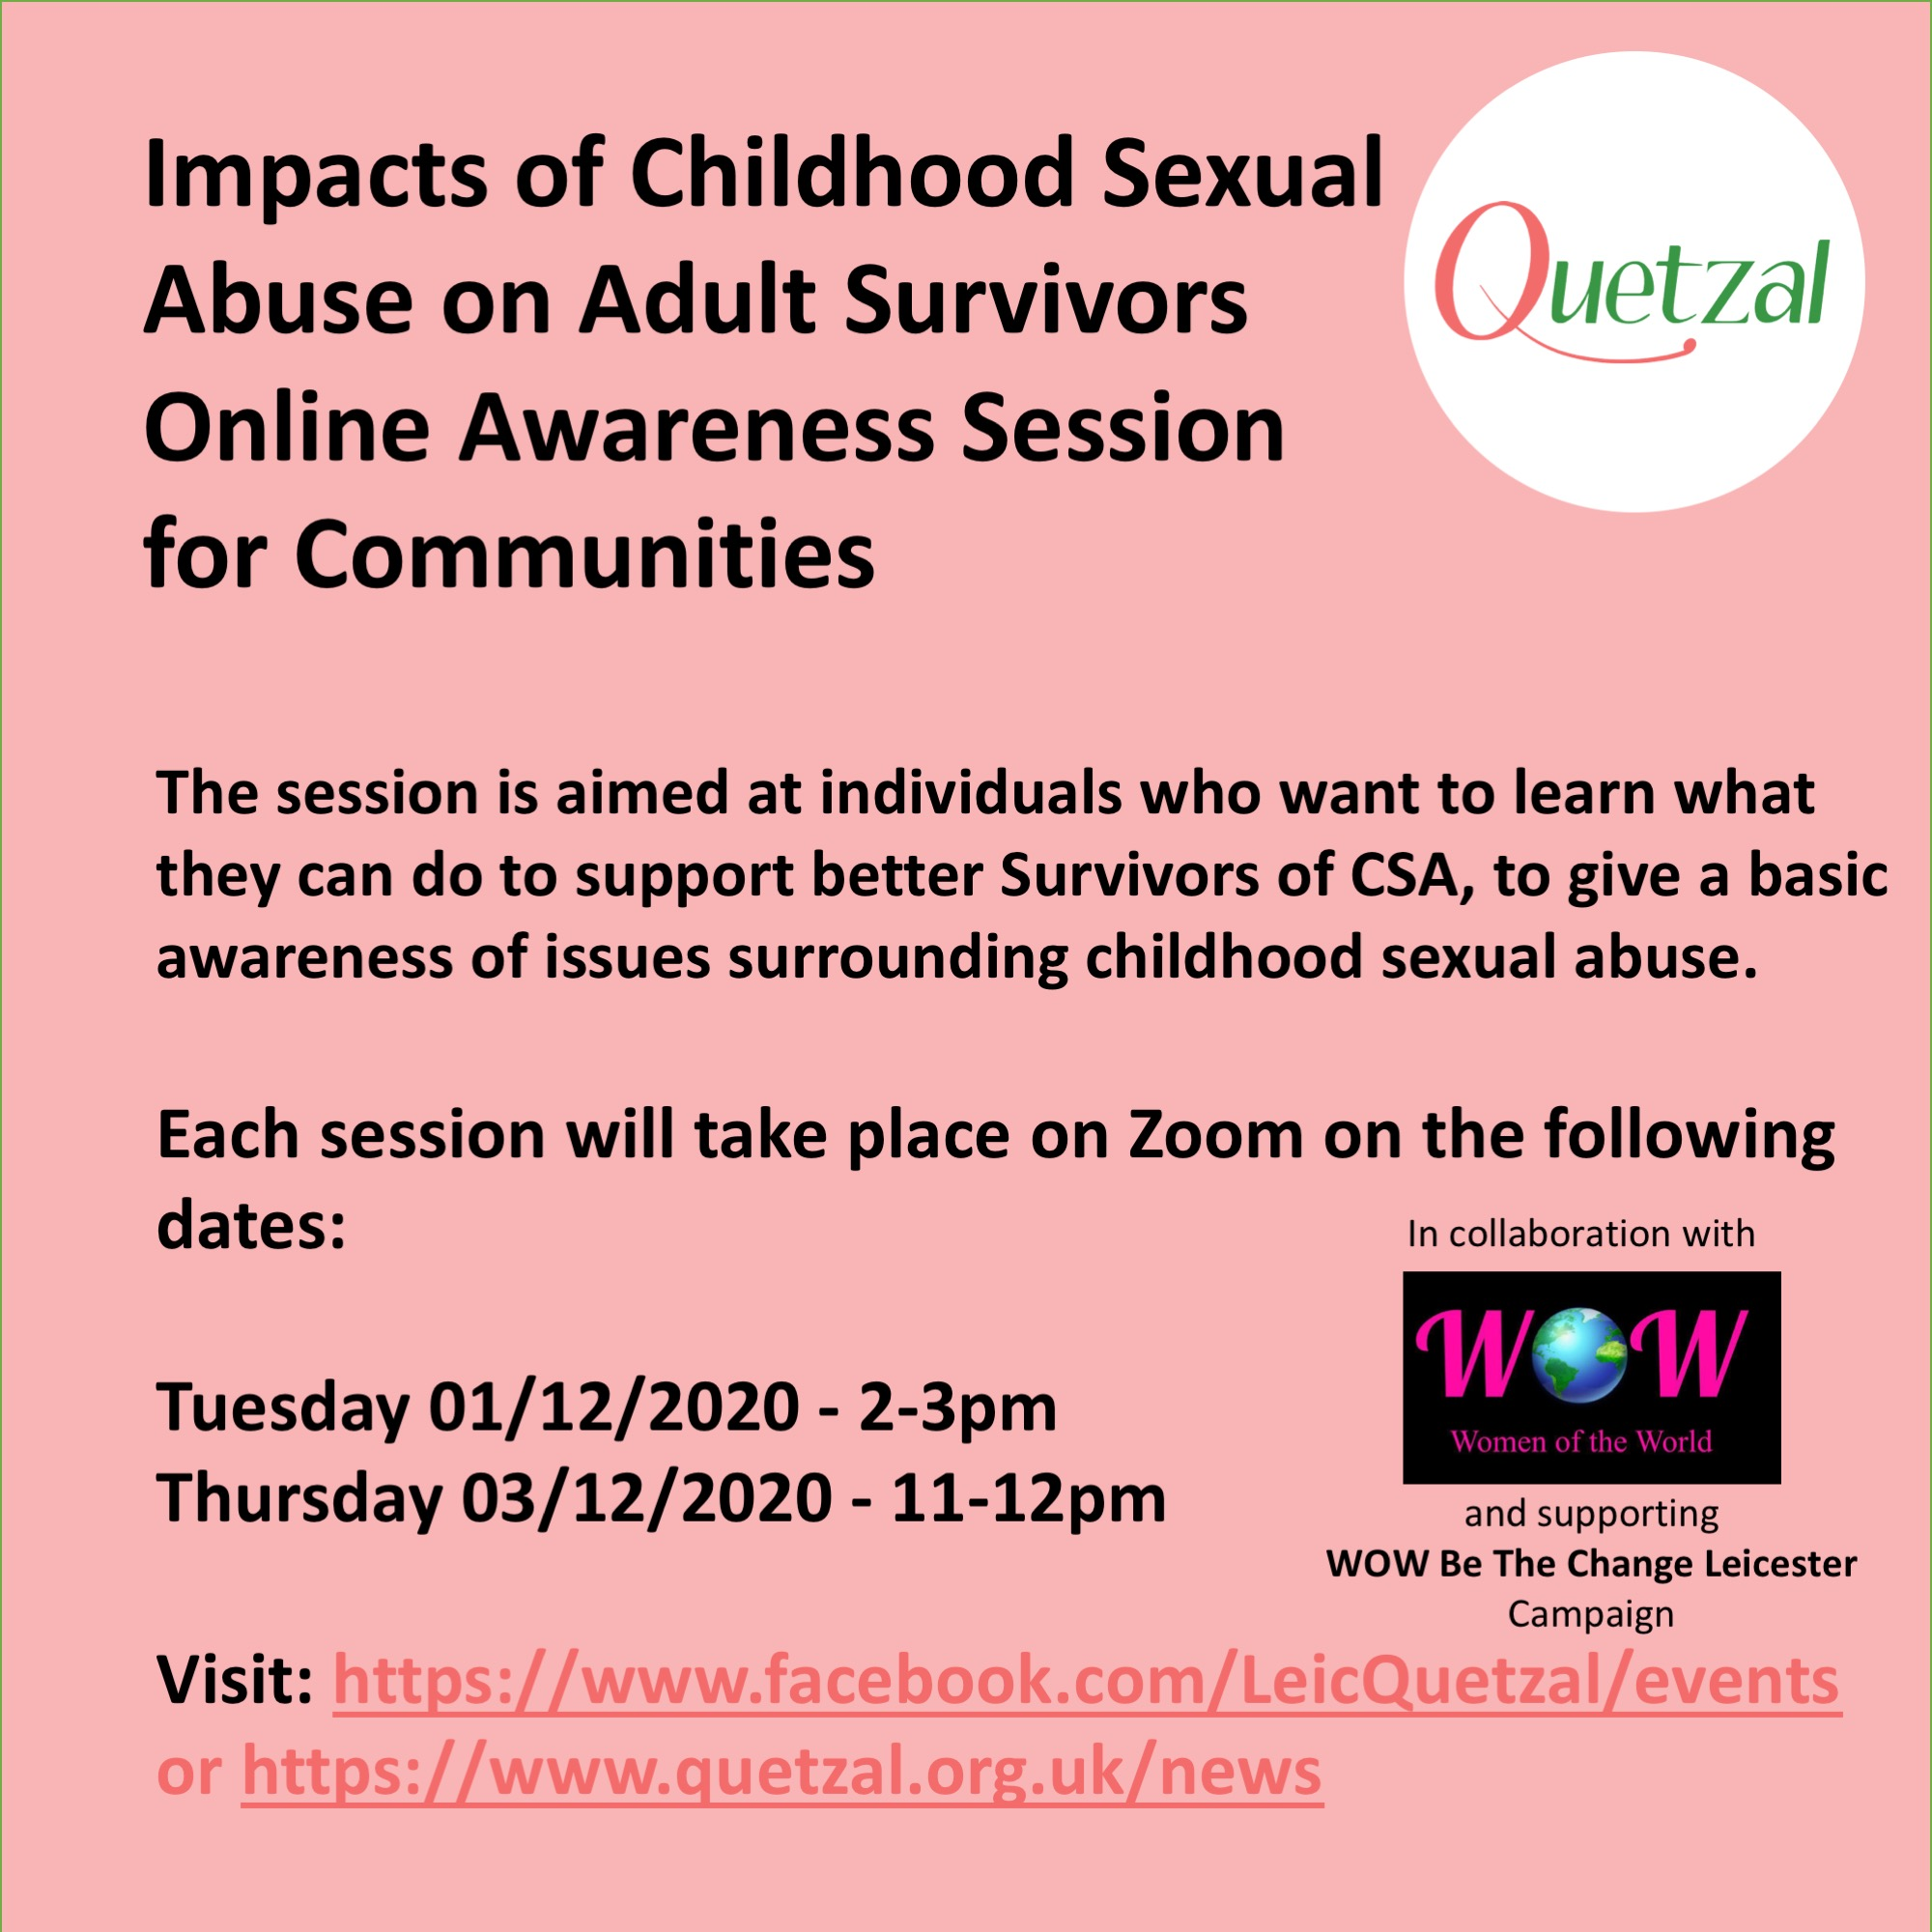 Attend Our Awareness Session About the Impact of Childhood Sexual Abuse on Adult Survivors